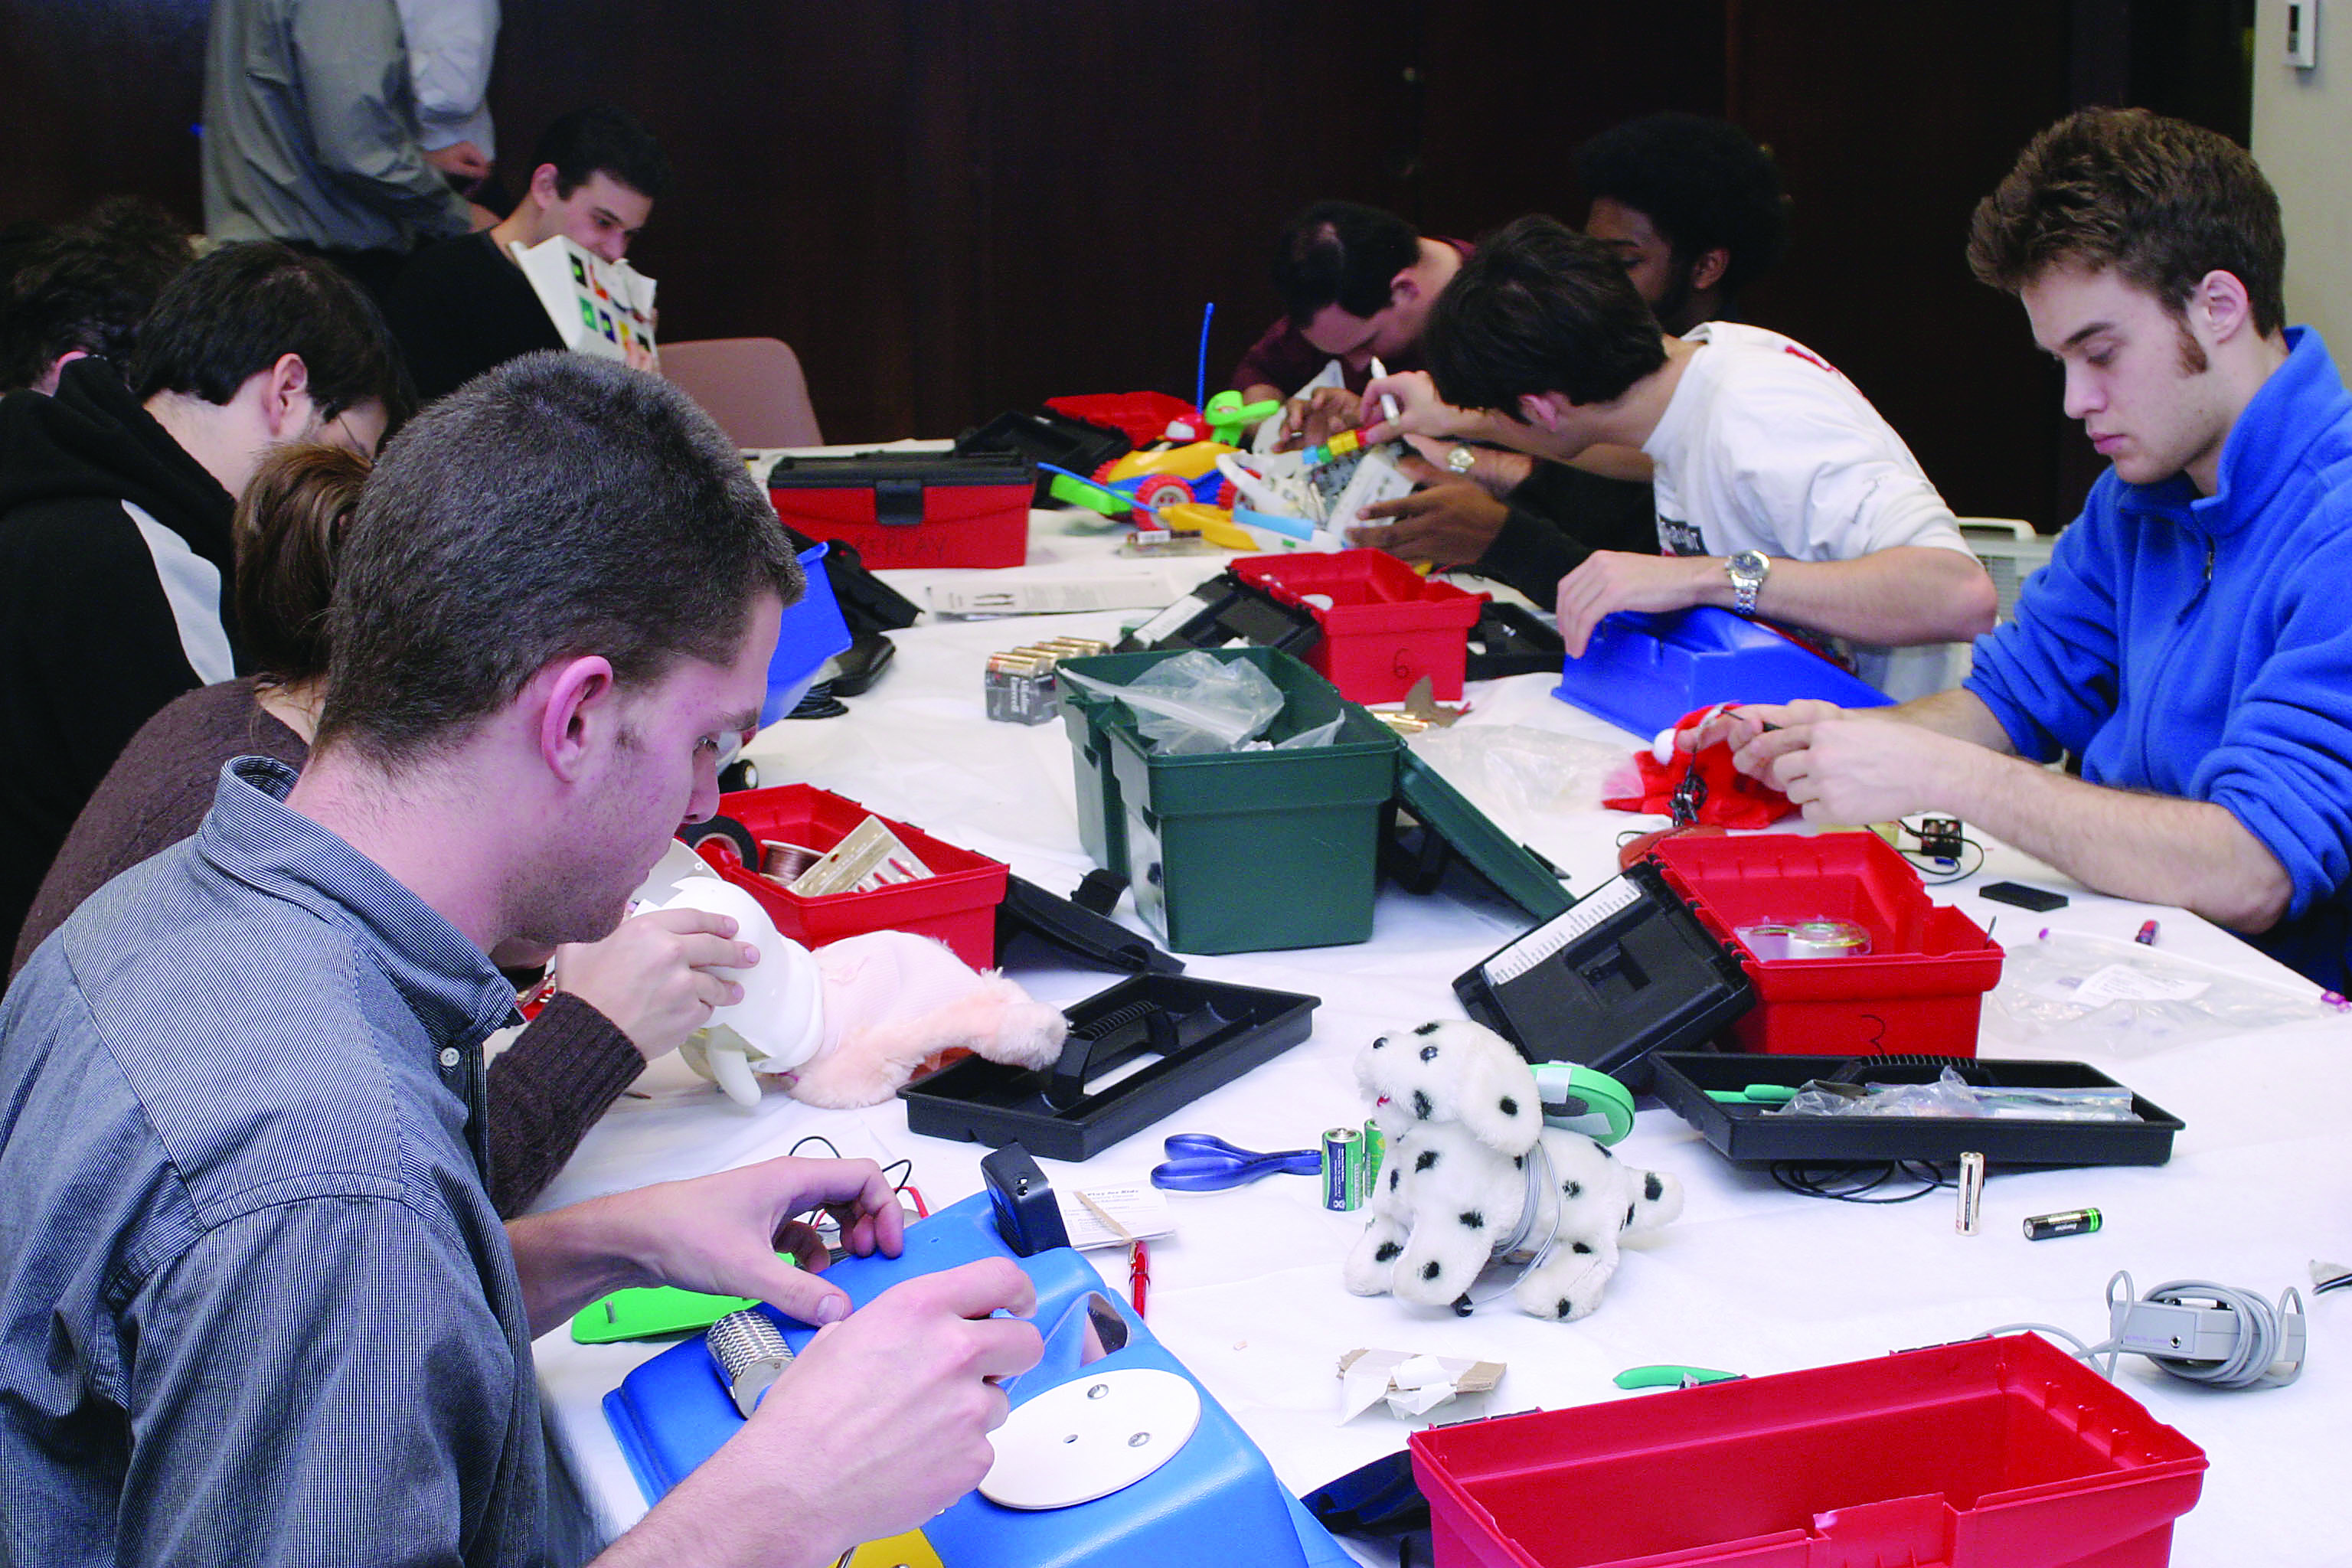 Toys being repaired at a workshop